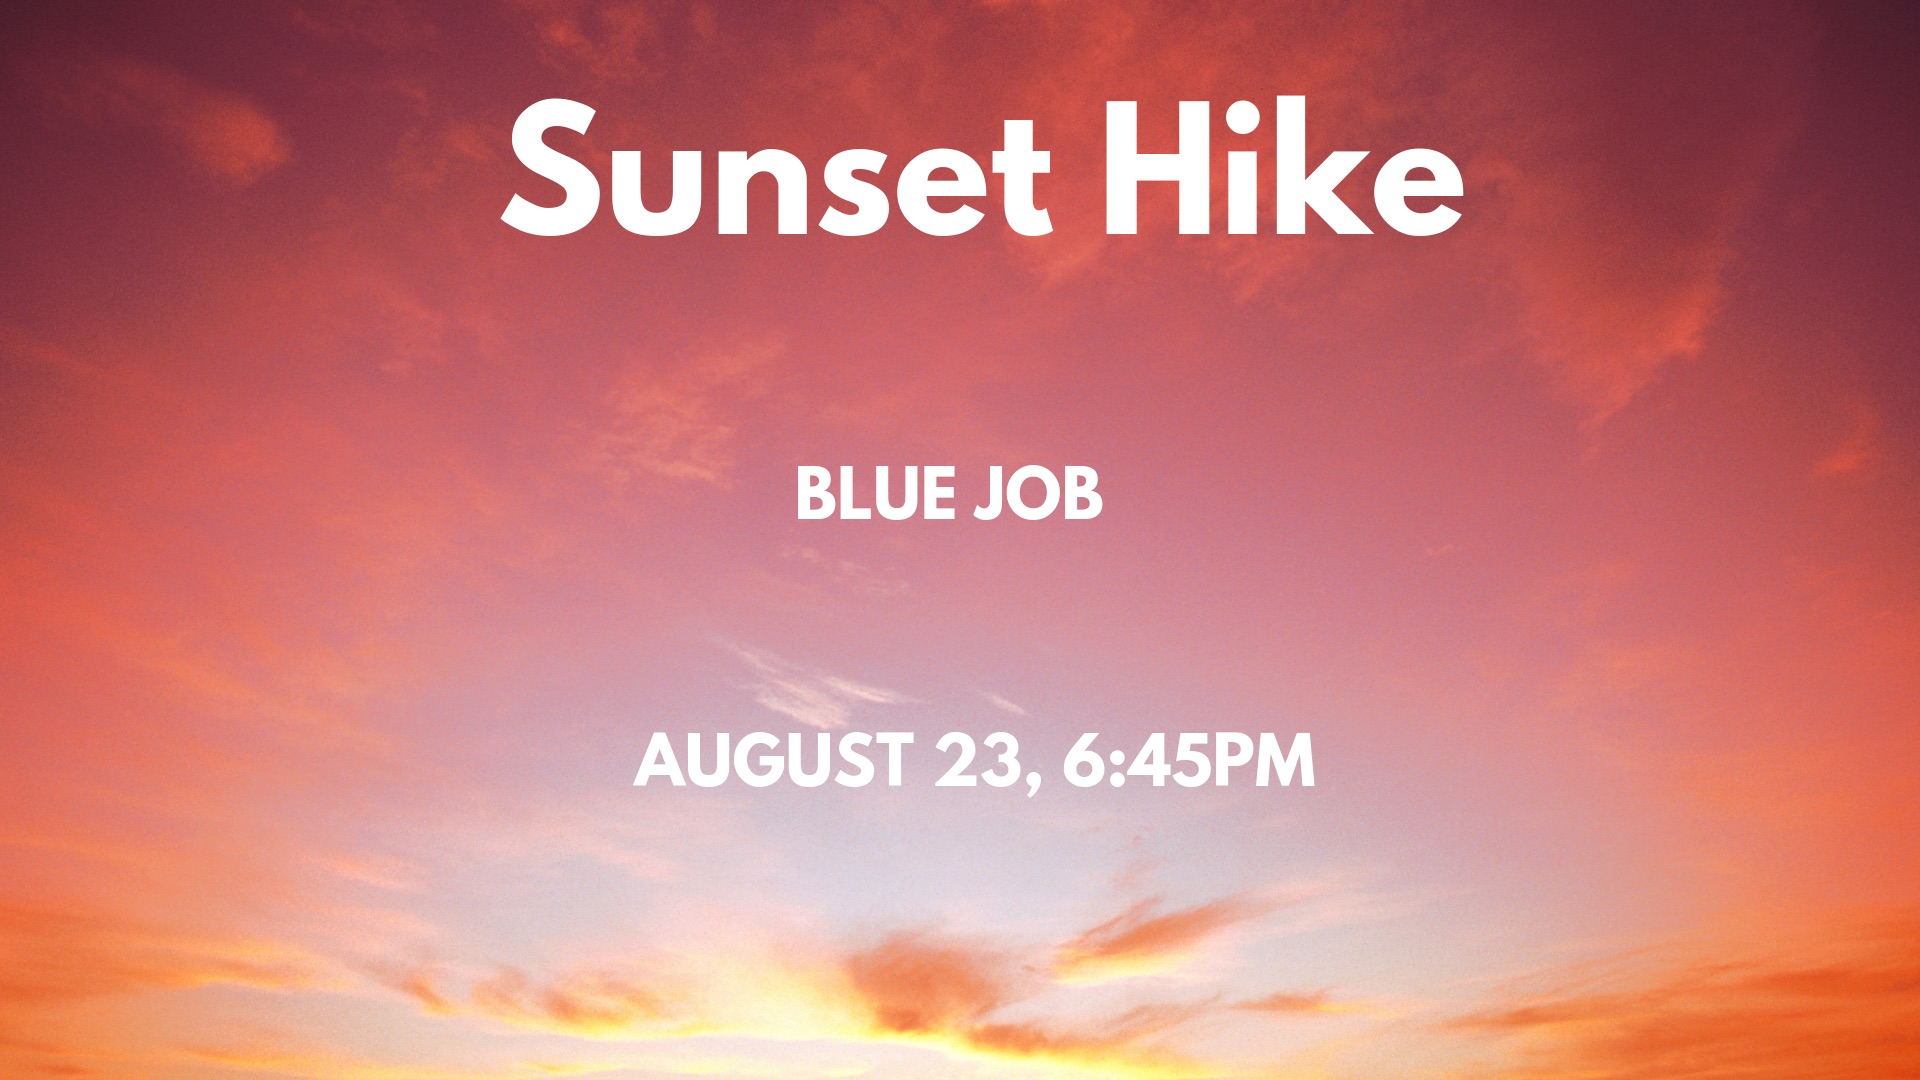 JOIN US FOR THIS MODERATE, CHILD FRIENDLY HIKE ON AUGUST 23 TO ENJOY THE SUNSET FROM THE SUMMIT. FOR MORE DETAILS AND TO RSVP VISIT OUR FACEBOOK EVENT.  CLICK HERE  TO GO TO OUR PAGE.